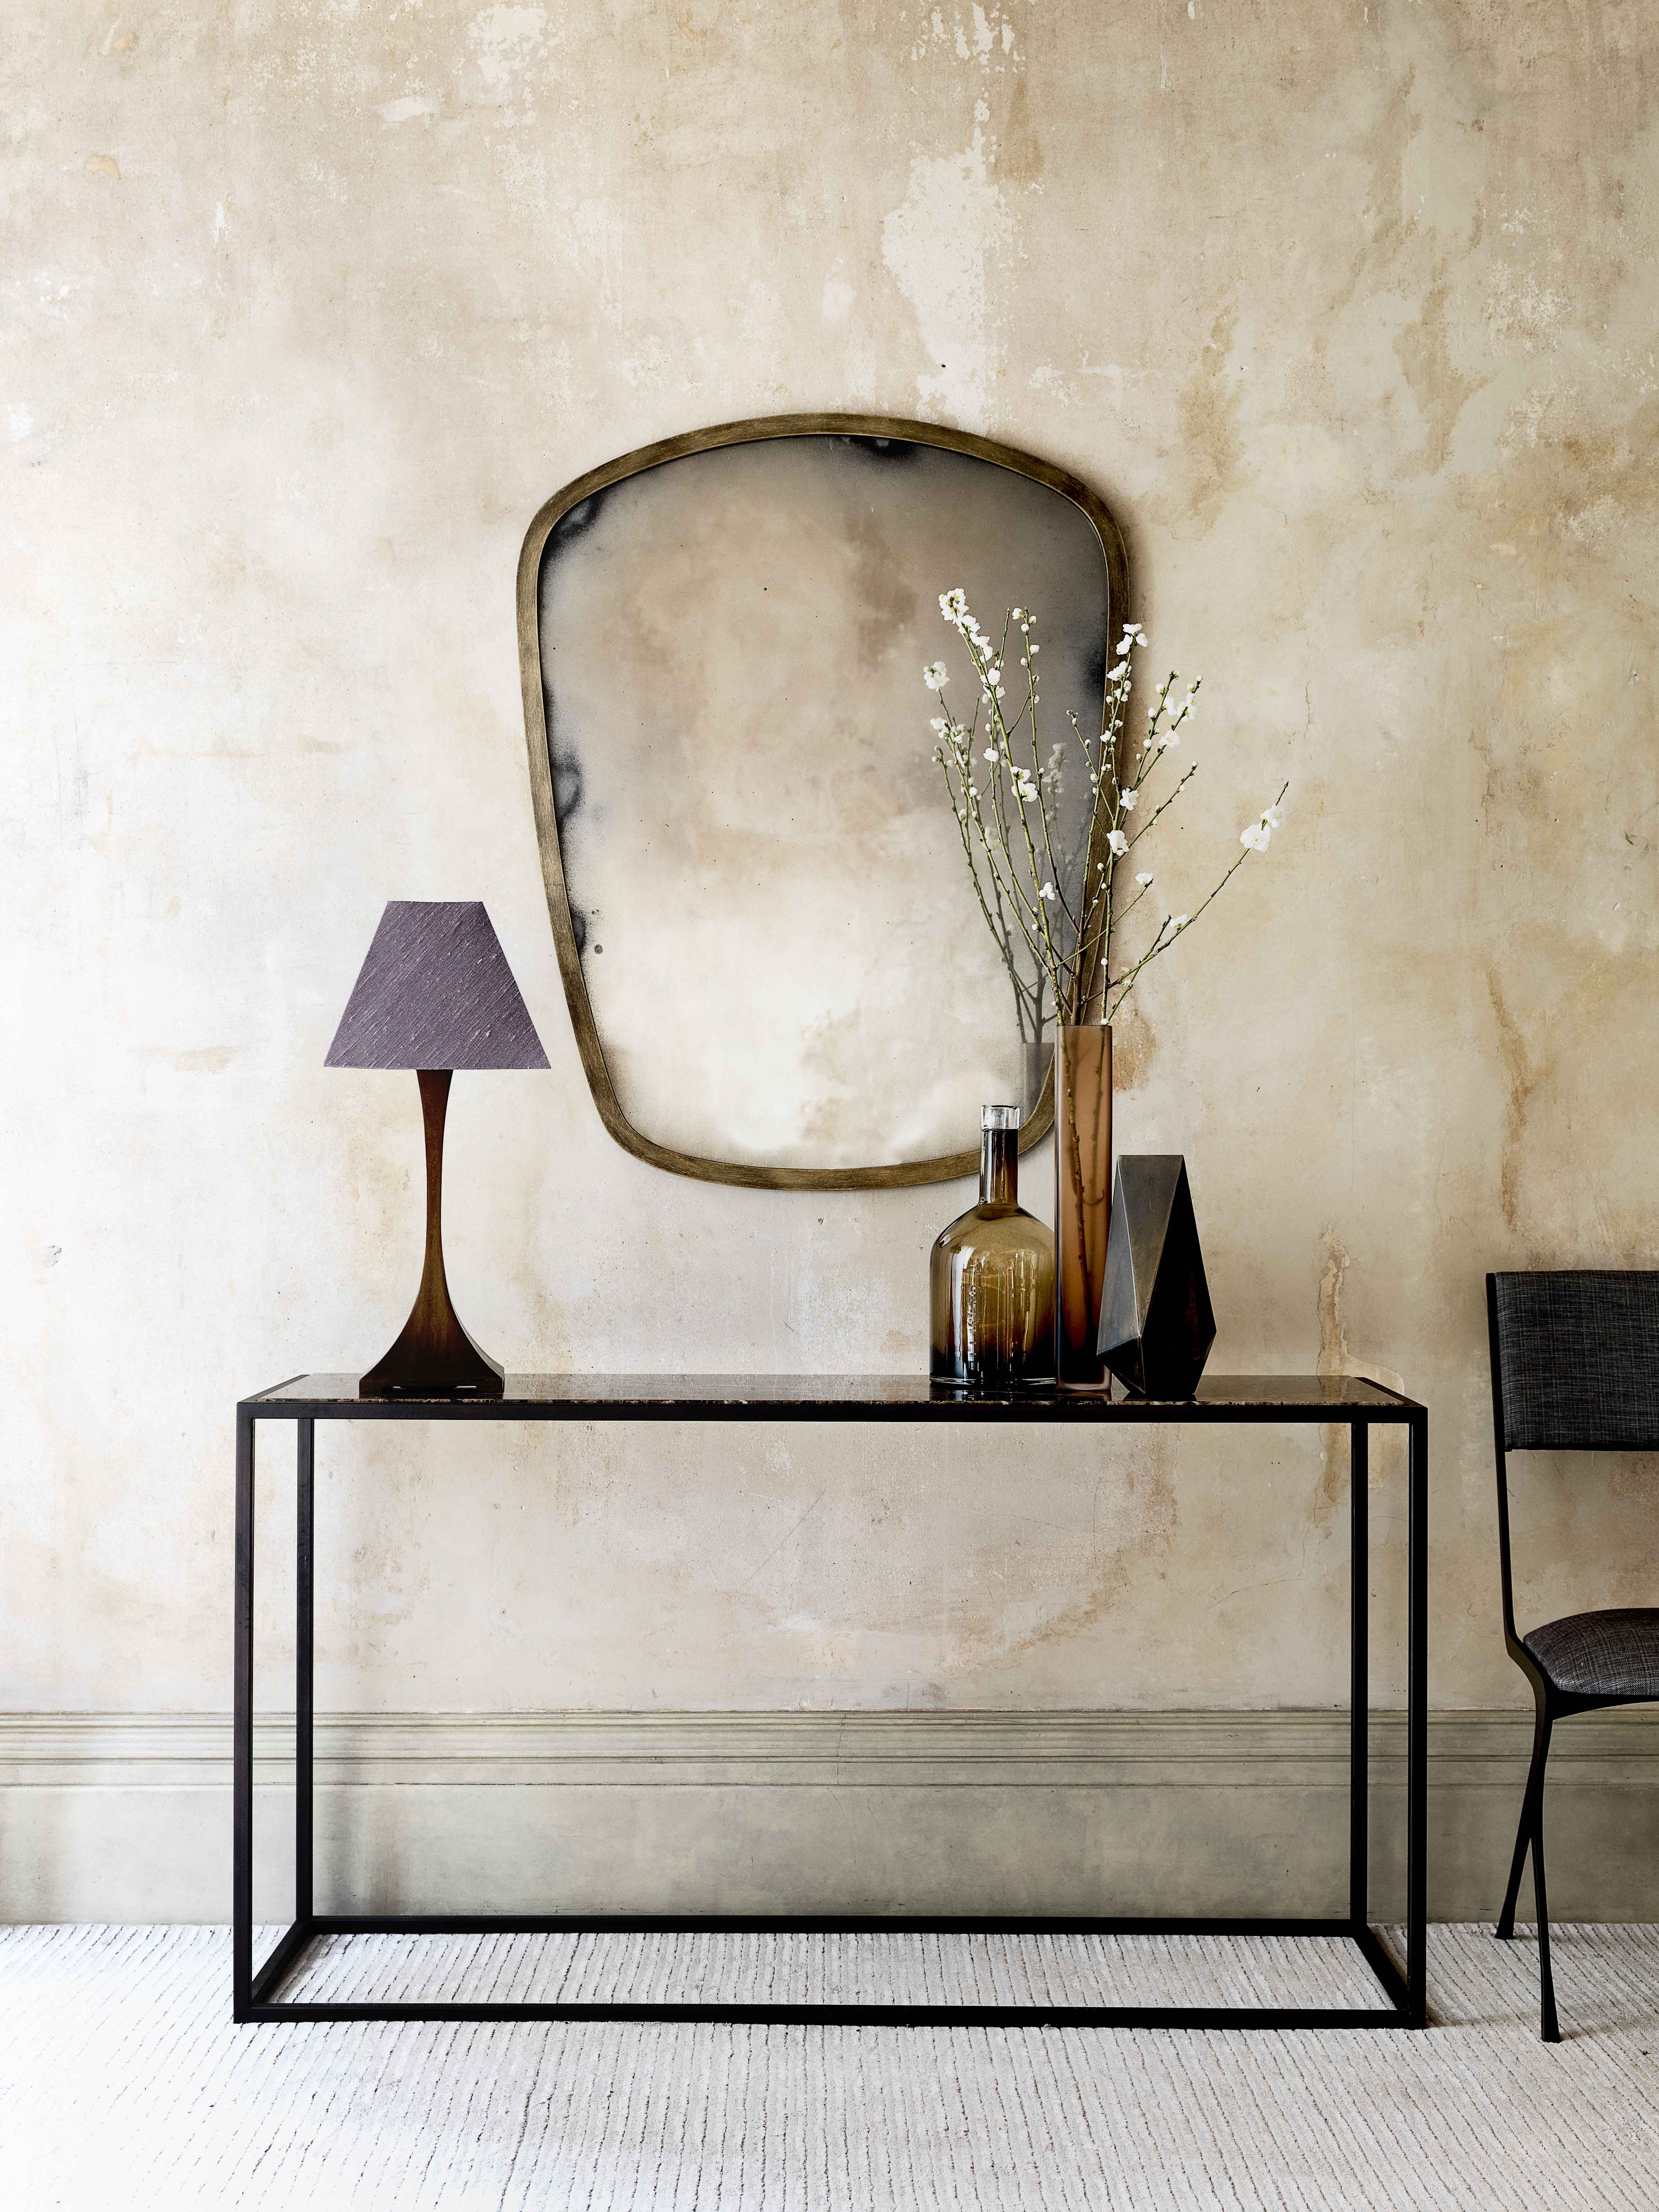 Hallway furniture with mirror  Simple elegant u timeless For the foyer entrance hall or hallway